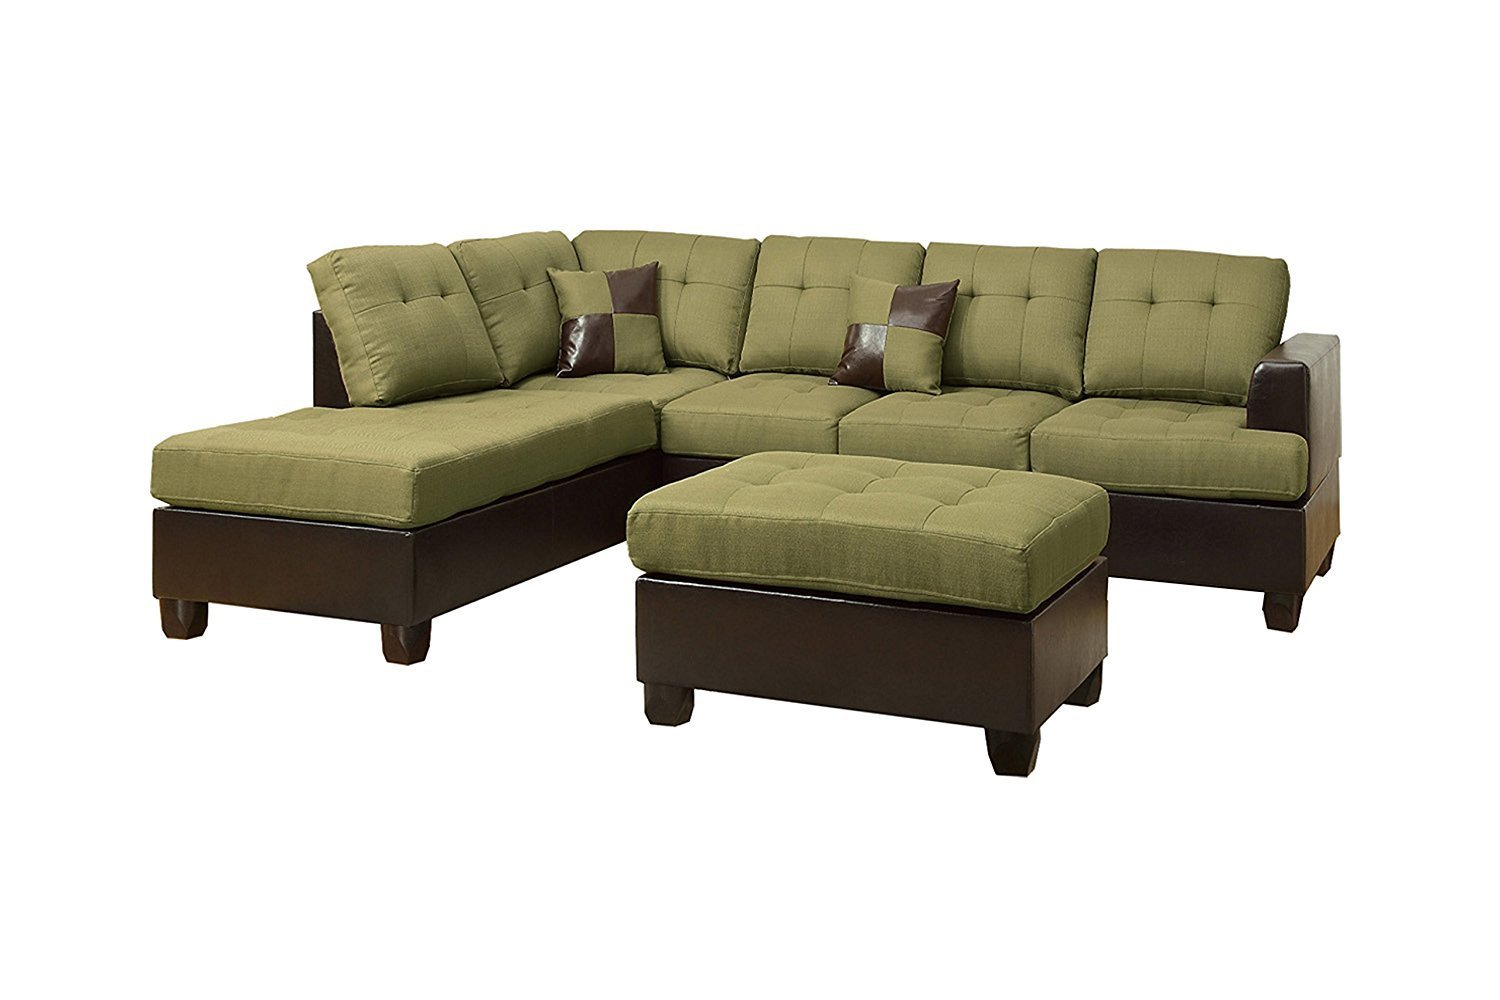 Fabric Sectional Sofas With Chaise Fabric Sectional Sofas With Chaise - Home Furniture Design